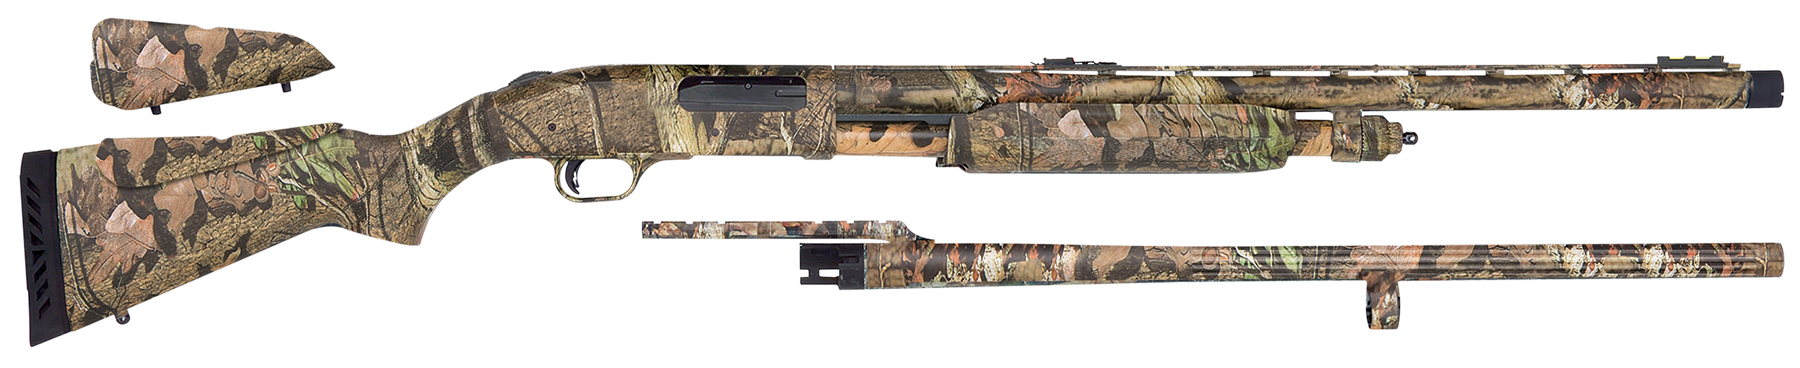 Mossberg 63417 835 Combo with LPA Pump  12 Mossy Oak Break-Up Infinity